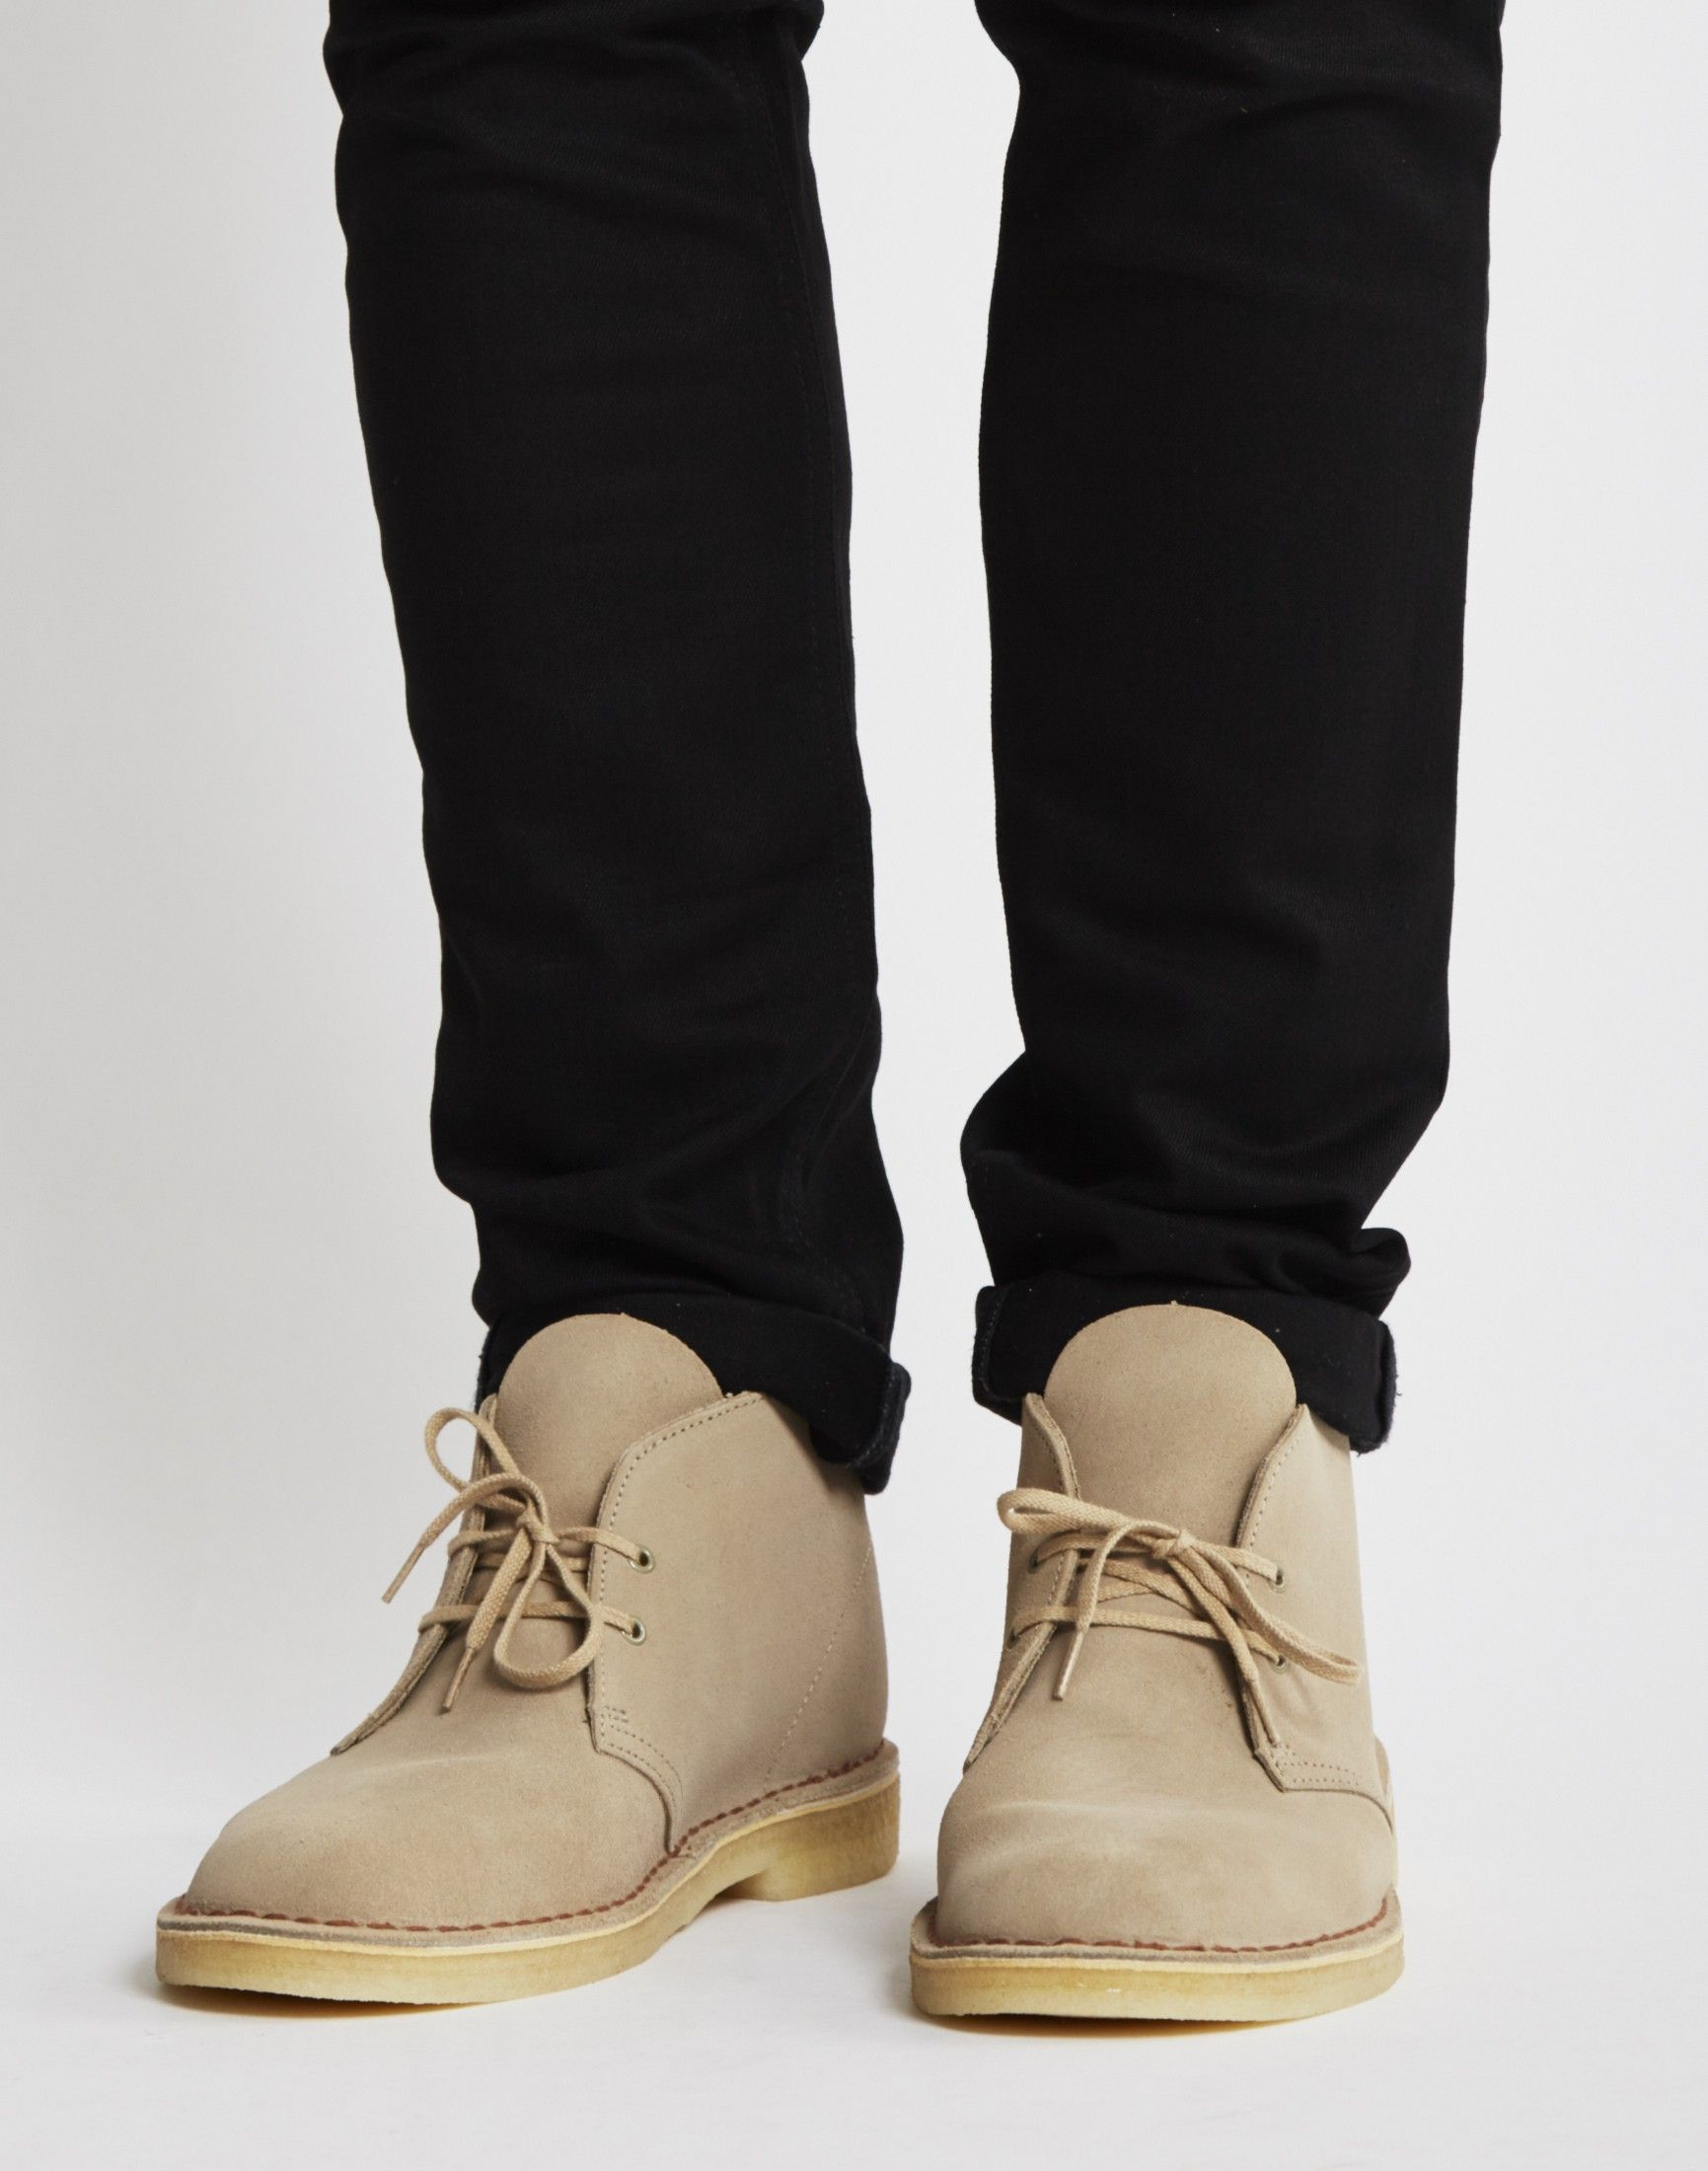 25927fc5 Clarks Originals Desert Boot Sand | Outfits in 2019 | Clarks ...